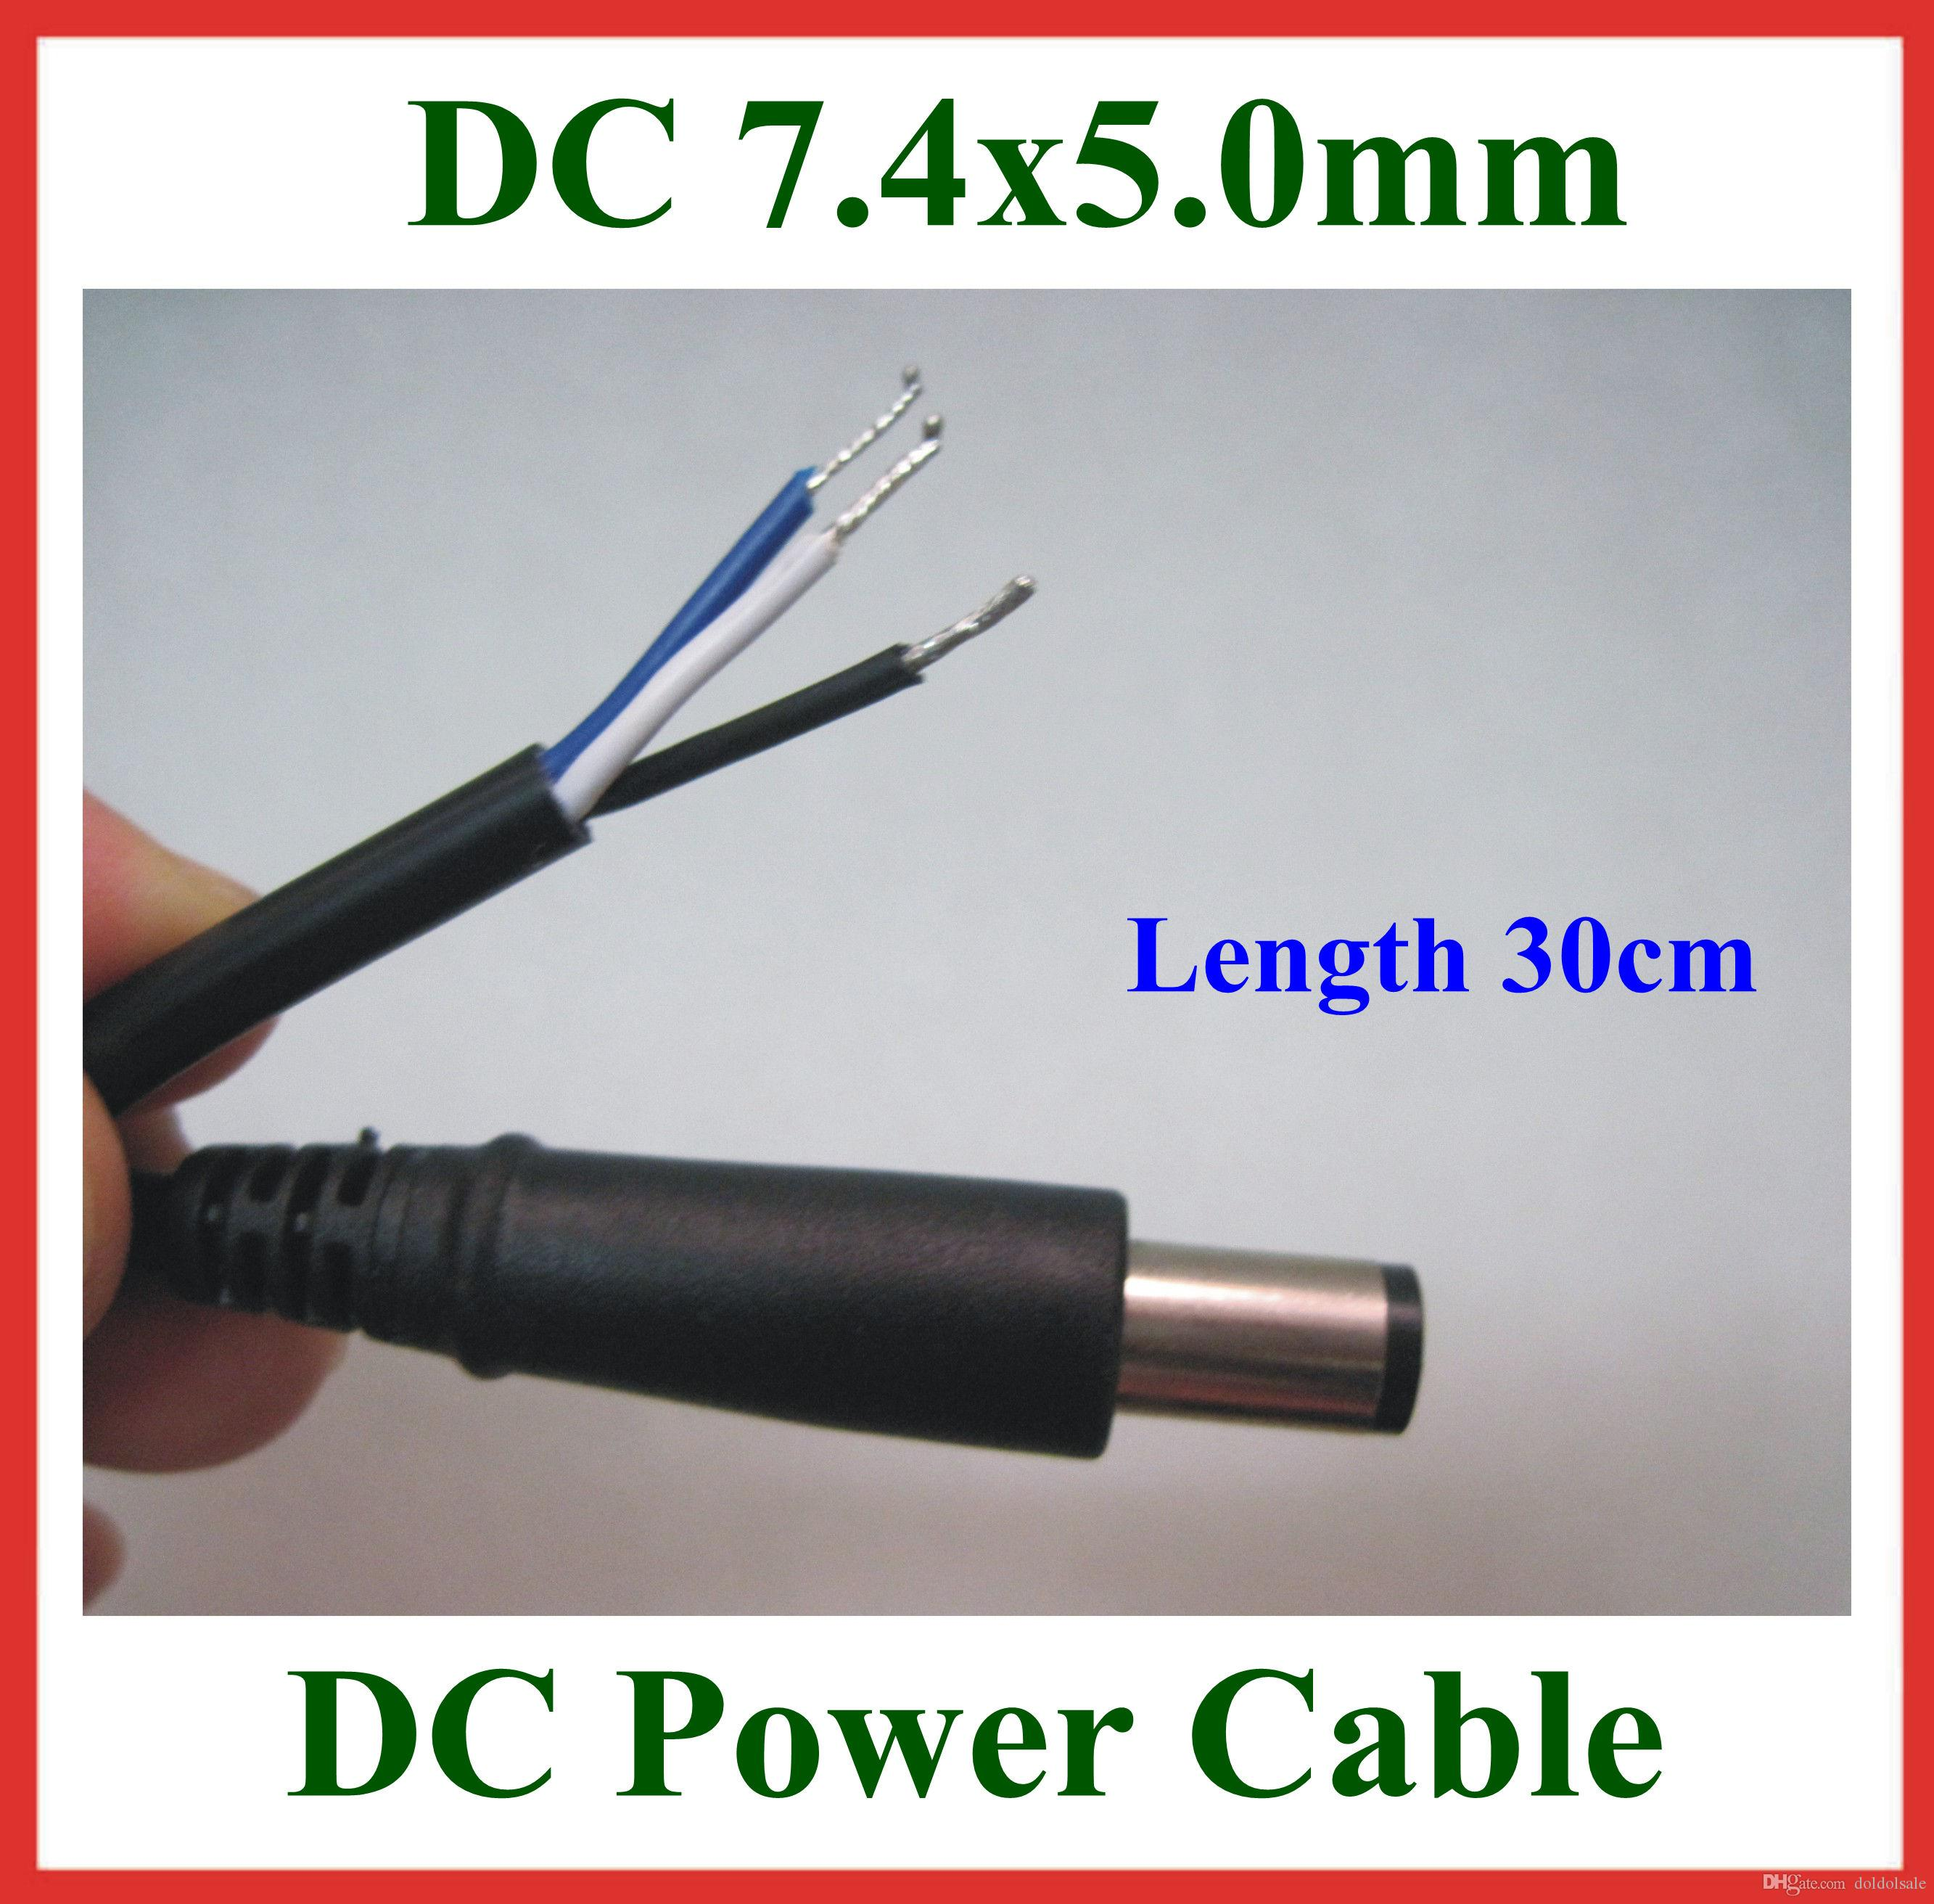 2pcs dc tip plug 7 4 5 0mm 7 4x5 0mm dc power dc tip plug 7 4*5 0mm 7 4x5 0mm dc power supply cable with pin wiring diagram for hp laptop charger at nearapp.co